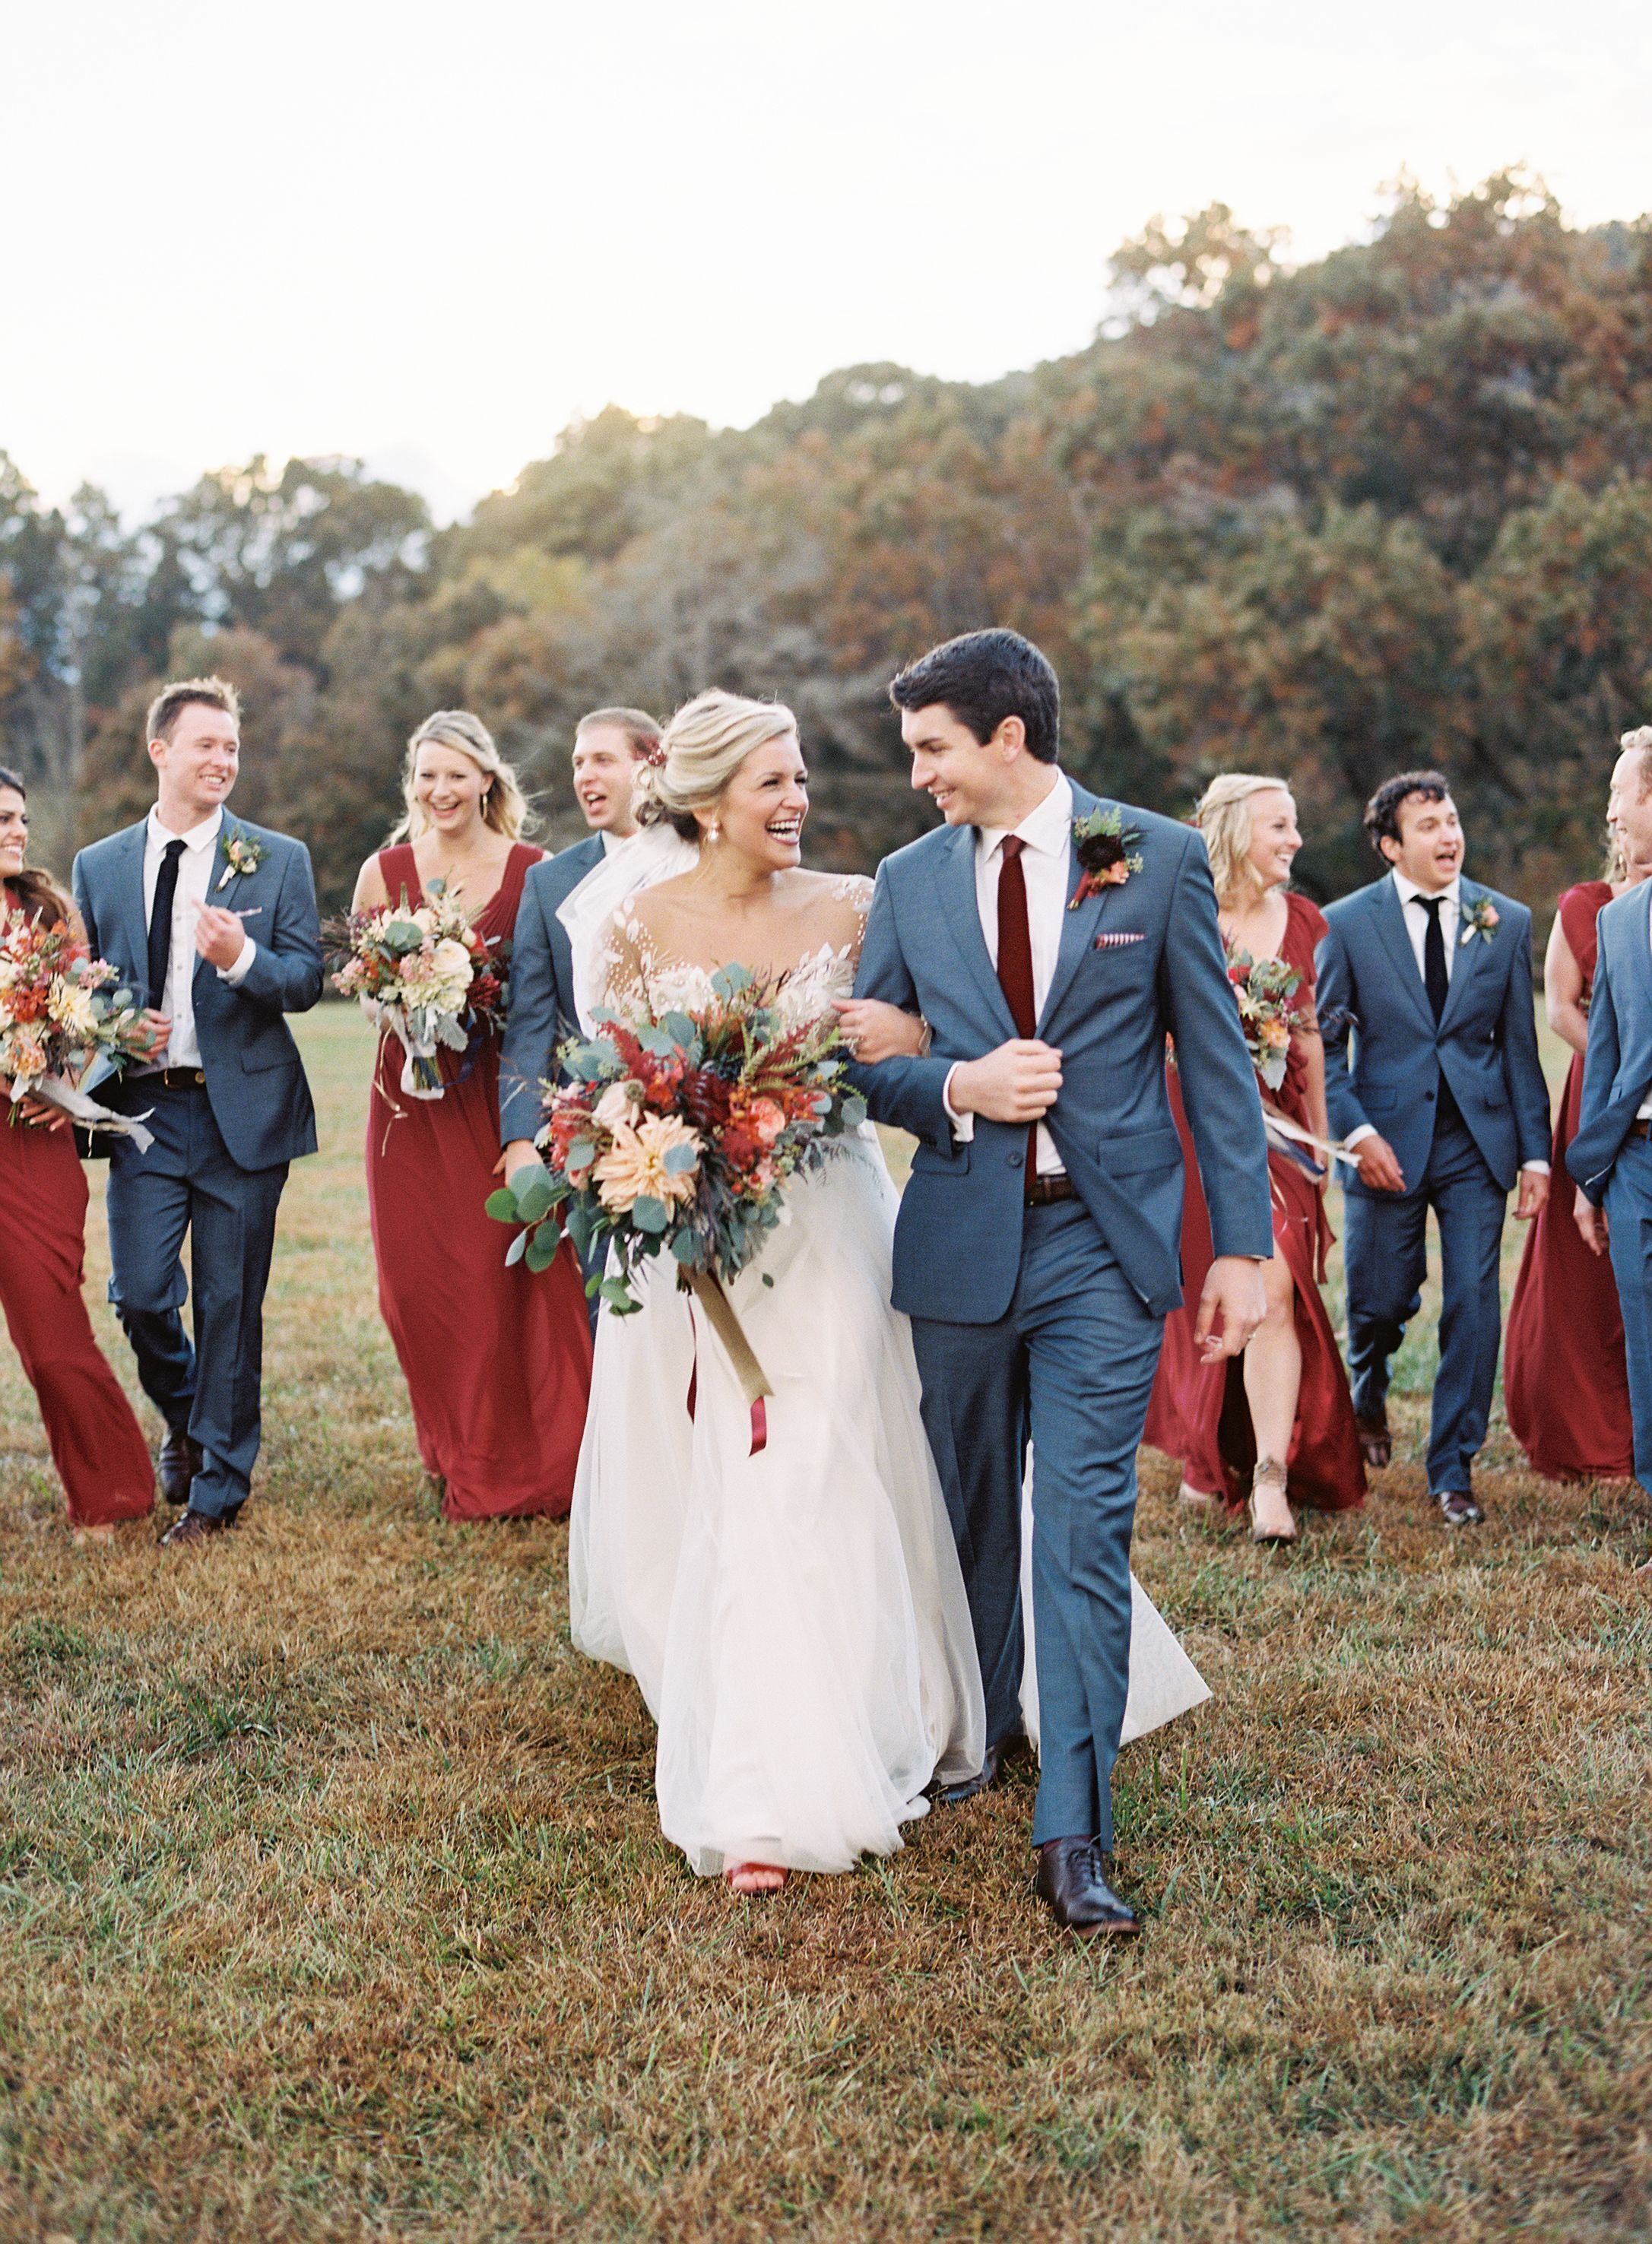 A Romantic Autumnal Country Wedding at Claxton Farm in